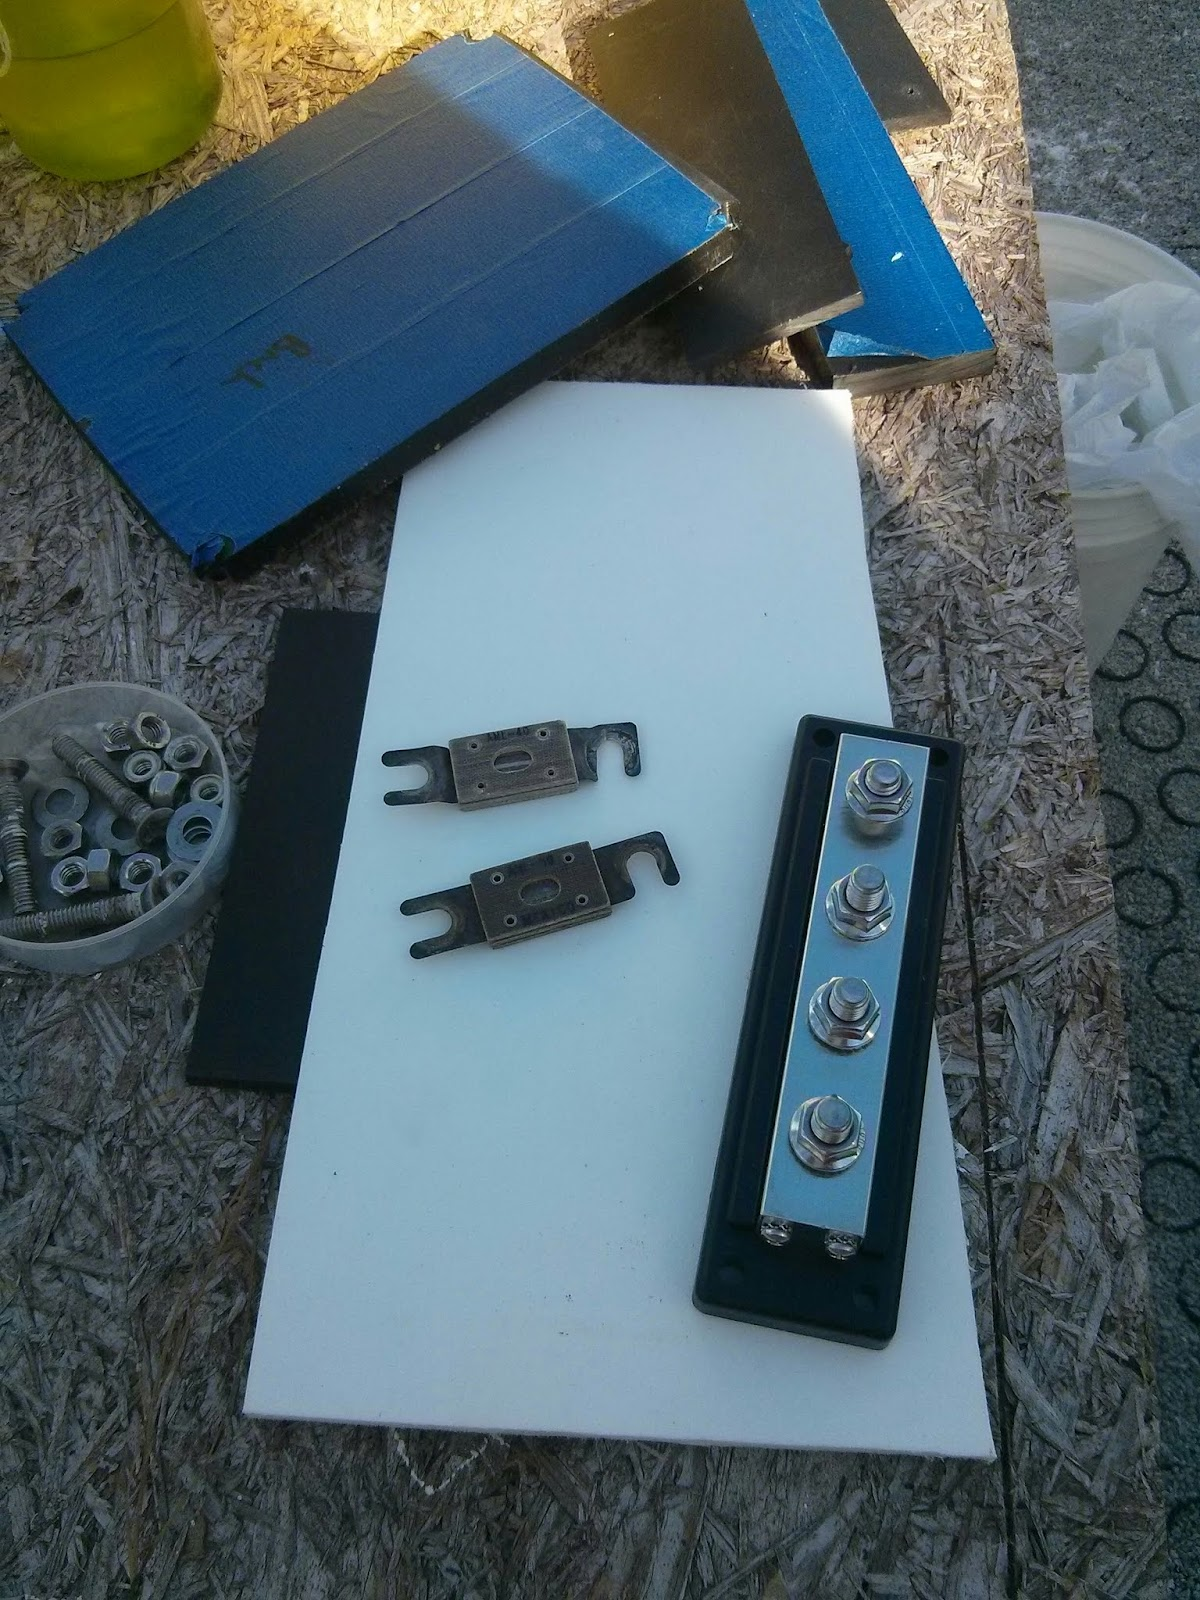 Homemade Fuse Box For Boat Explained Wiring Diagrams Small Projects Making Life Aboard Easier Fabricating A Diy Panel